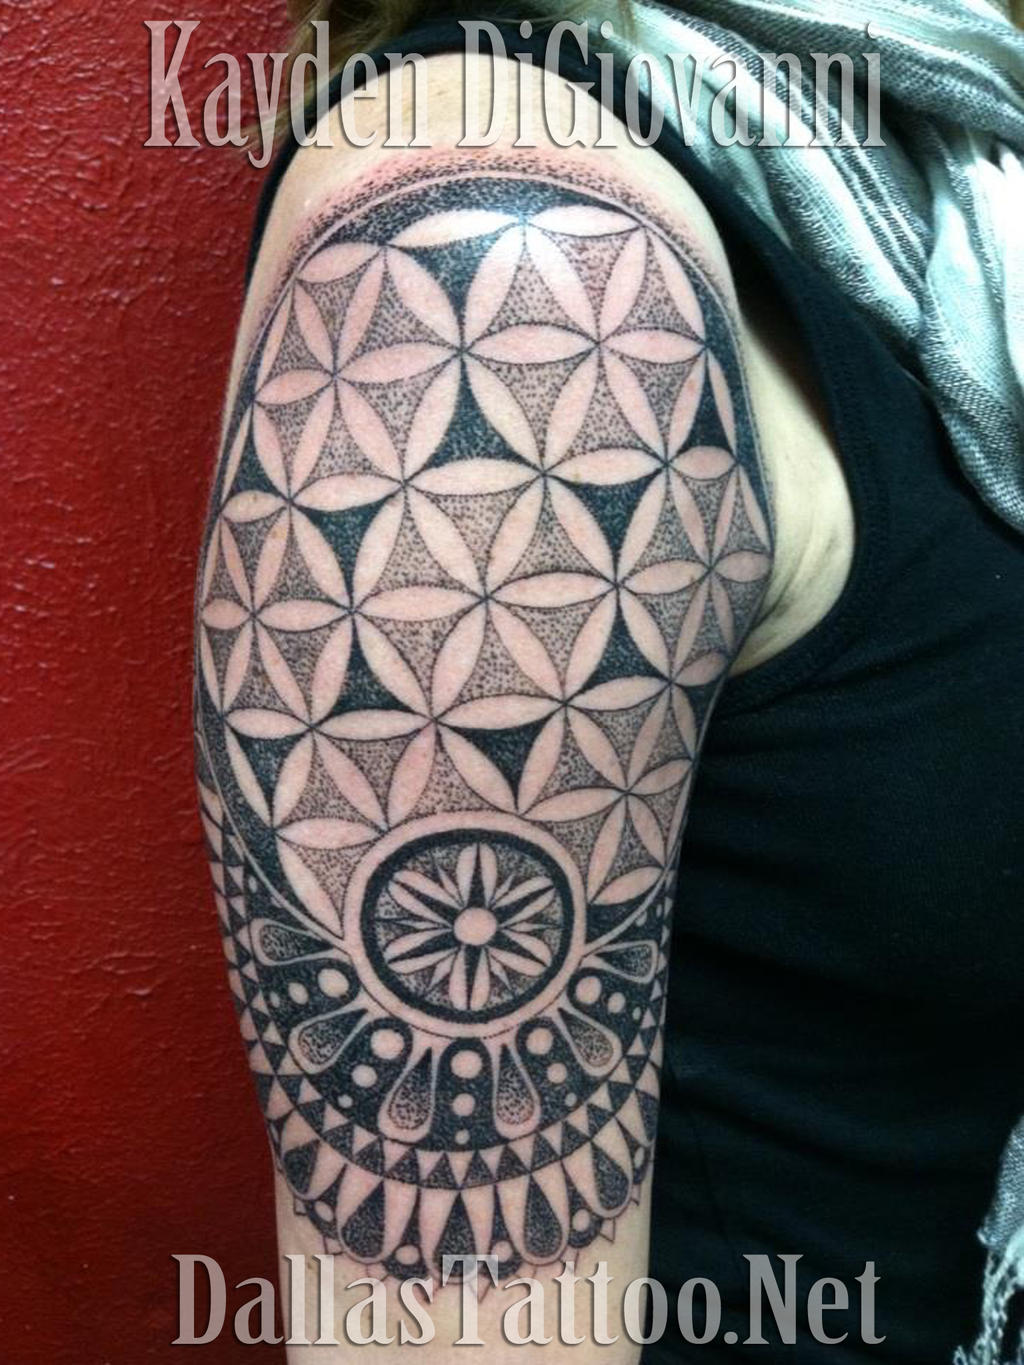 Dallas Tattoo Artist Kayden DiGiovanni Geometric by kayden7 on DeviantArt